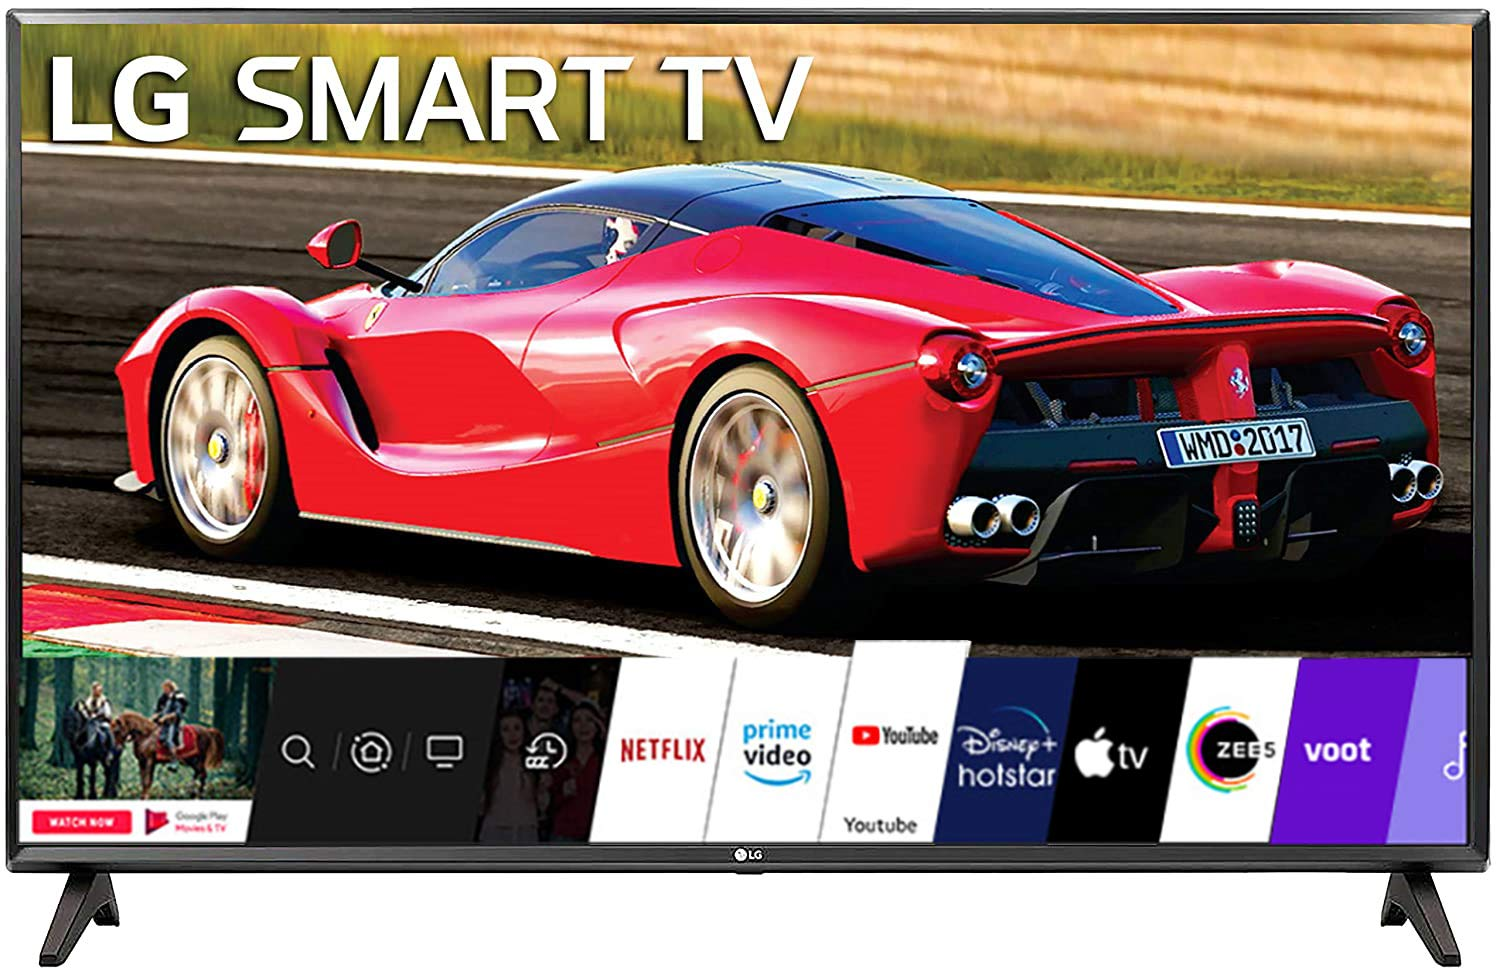 Amazon Navratri Sale: If you want to take smart TV for home or office, then avail up to 50% discount in Navratri sale running on Amazon.